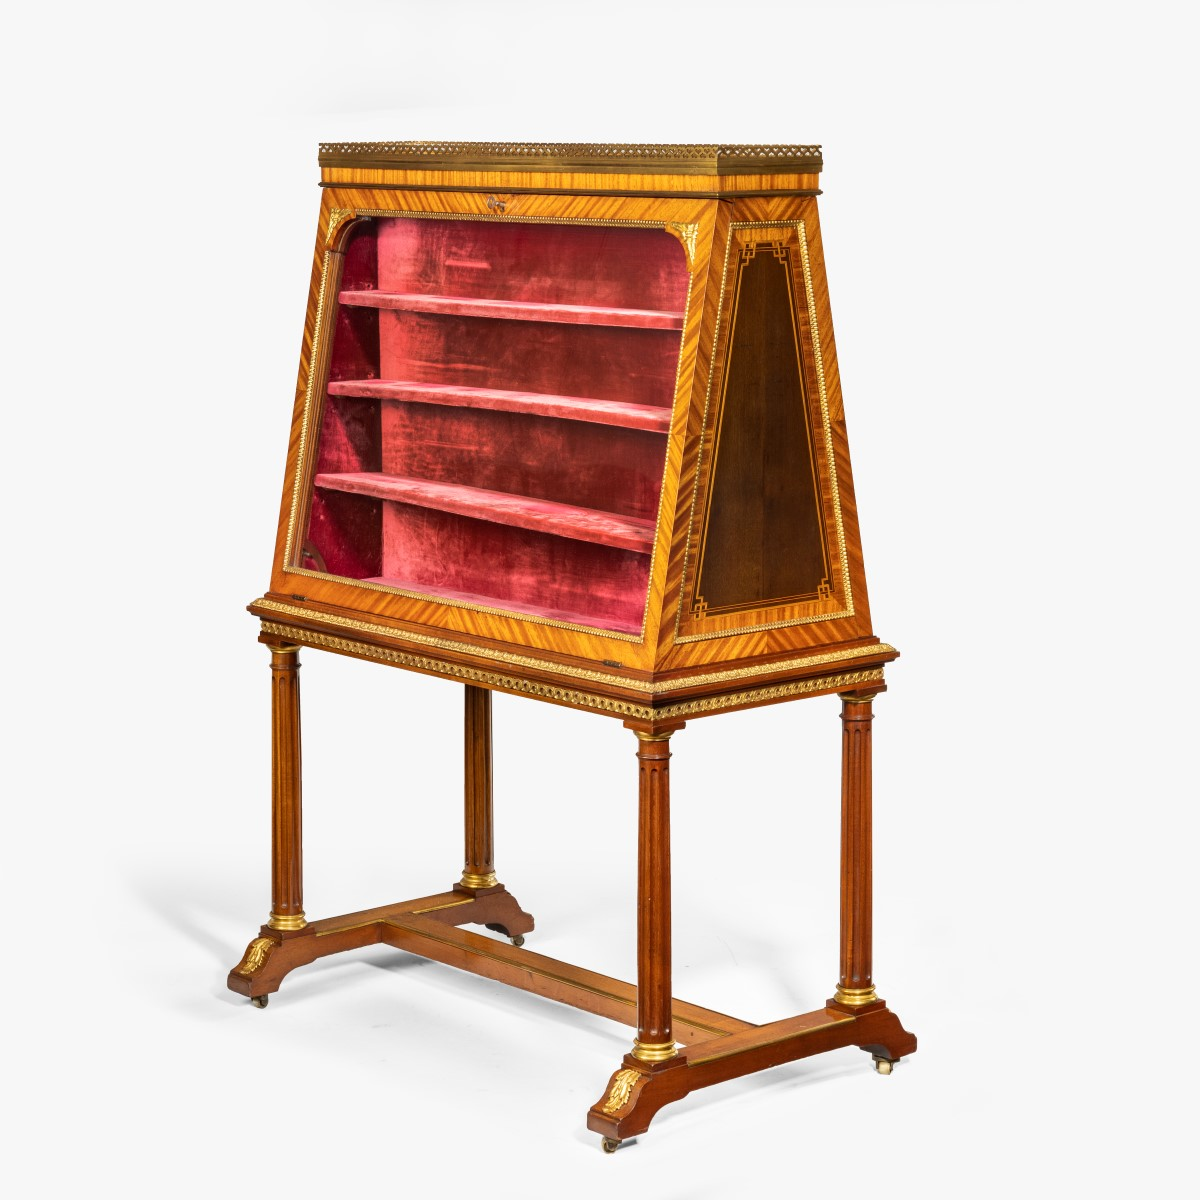 A rare and unusual French double-sided display cabinet by François Linke